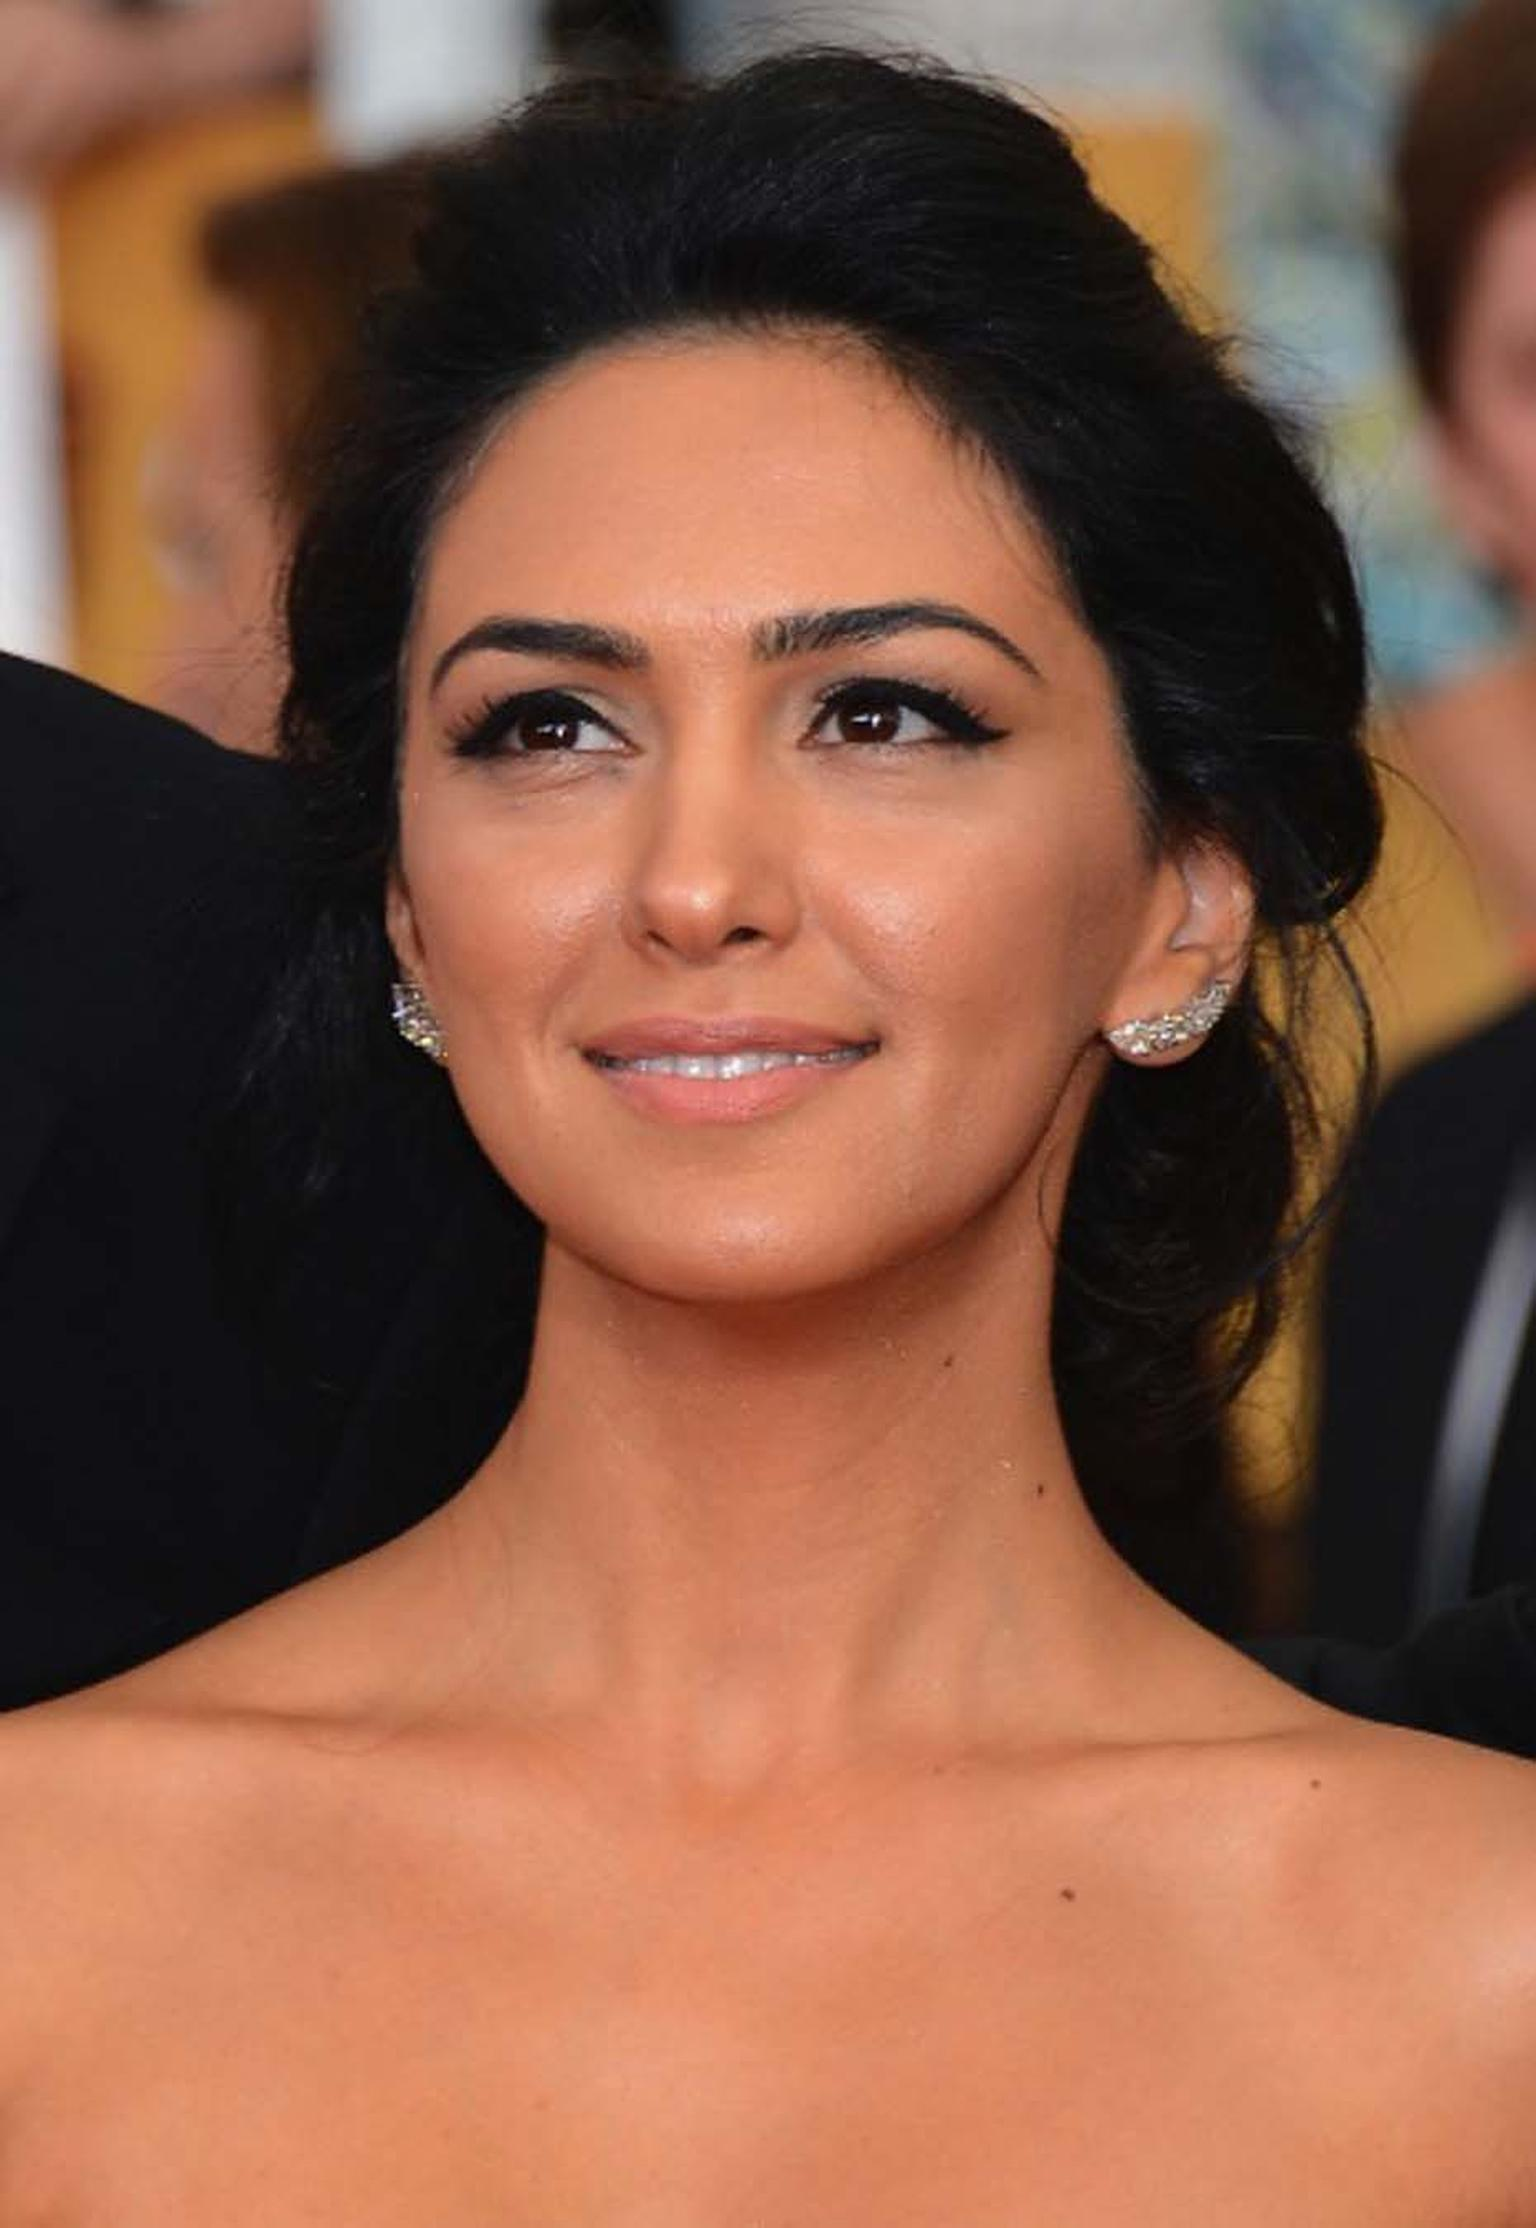 Nazanin Boniadi nudes (61 foto and video), Tits, Cleavage, Instagram, lingerie 2020